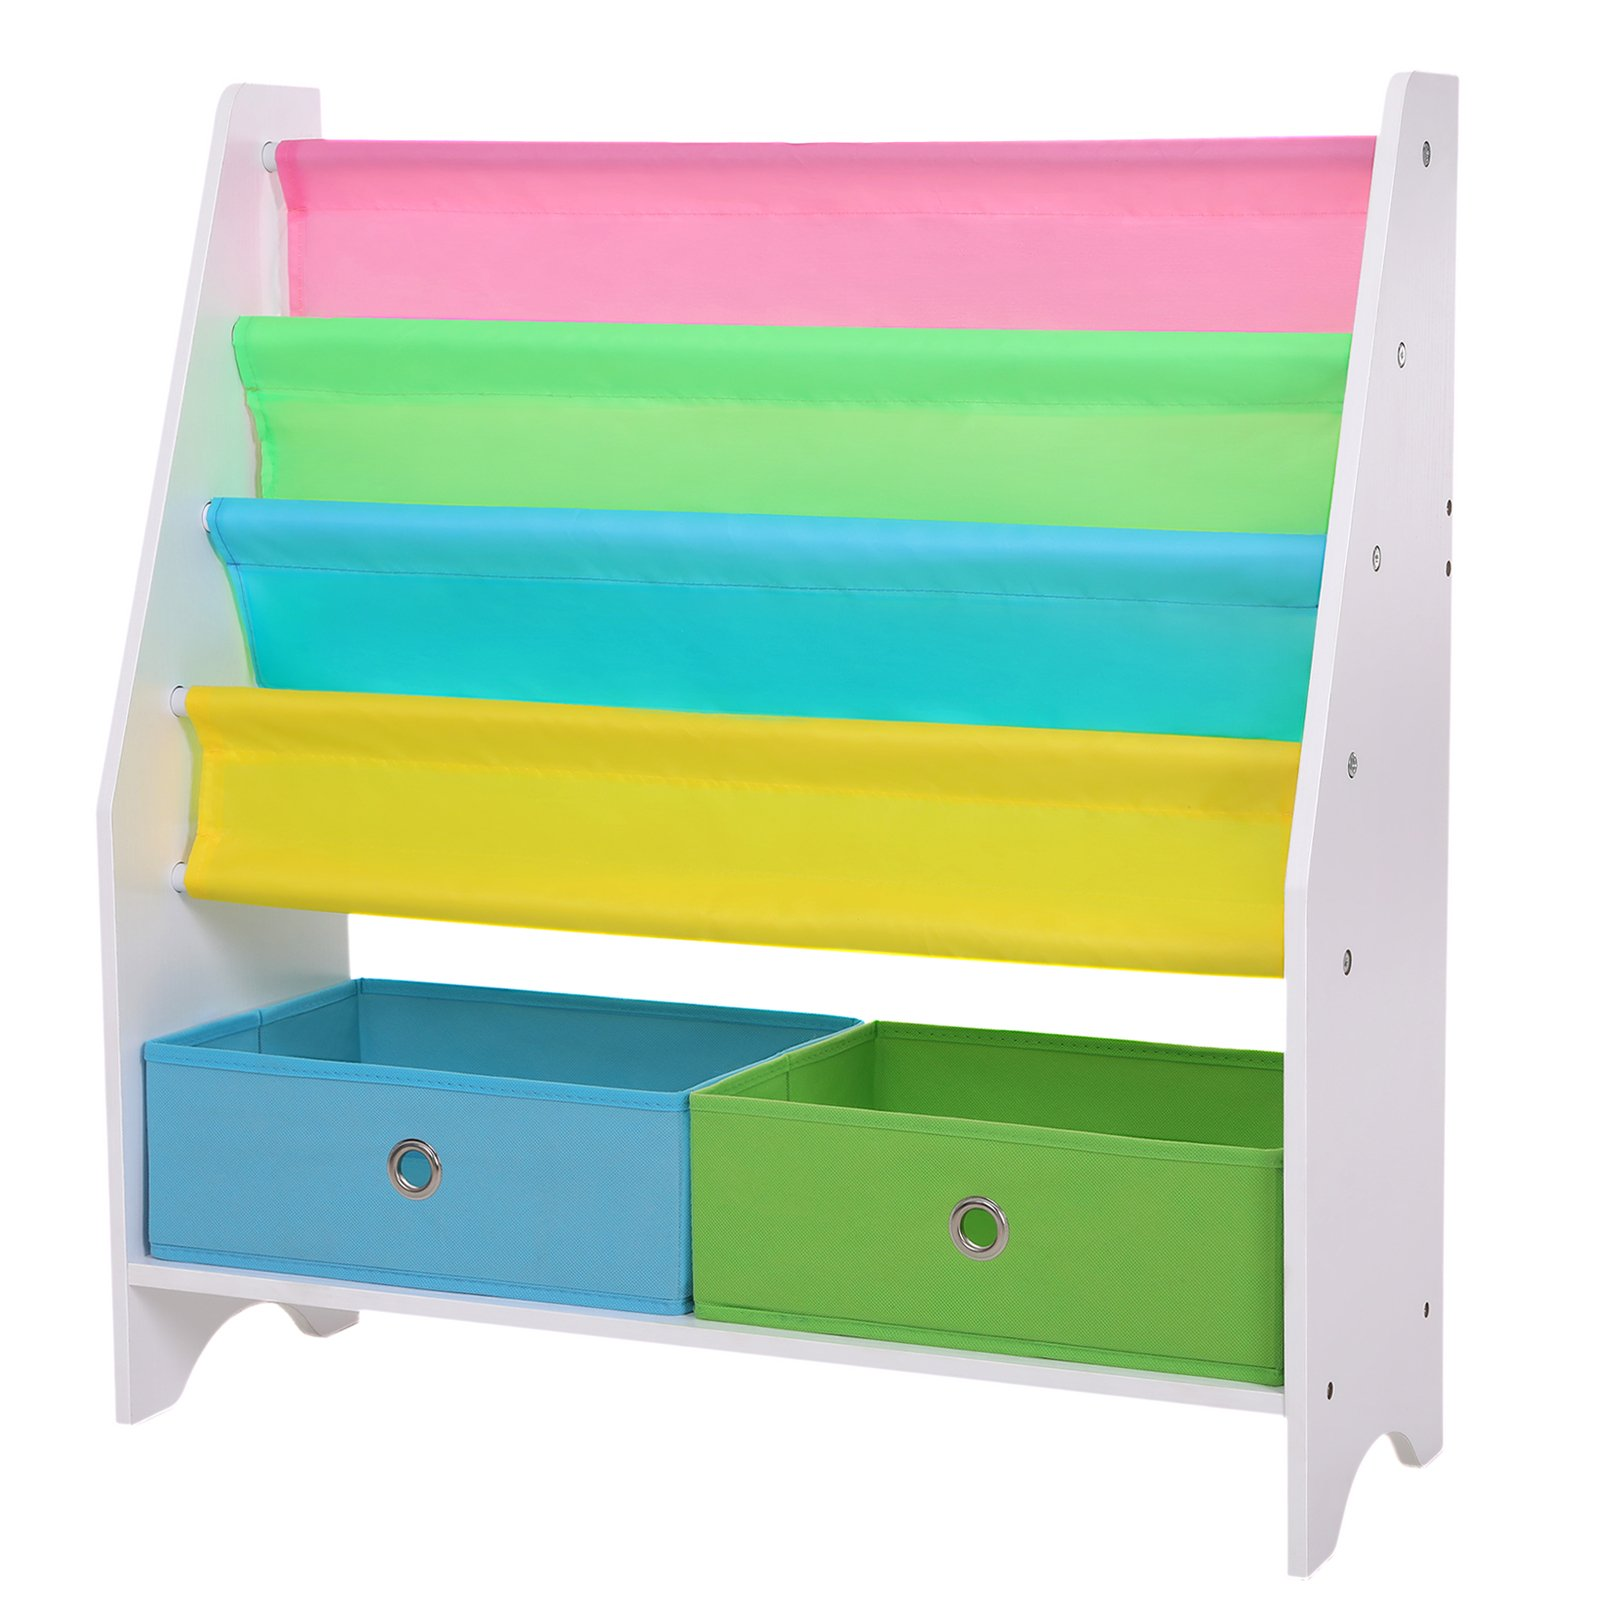 SONGMICS Children's Book Shelves with Toy Storage Bins, 4 Tier Fabric Bookcase, Includes Anti-toppling Straps, Wooden Board Frame UGKR24WT